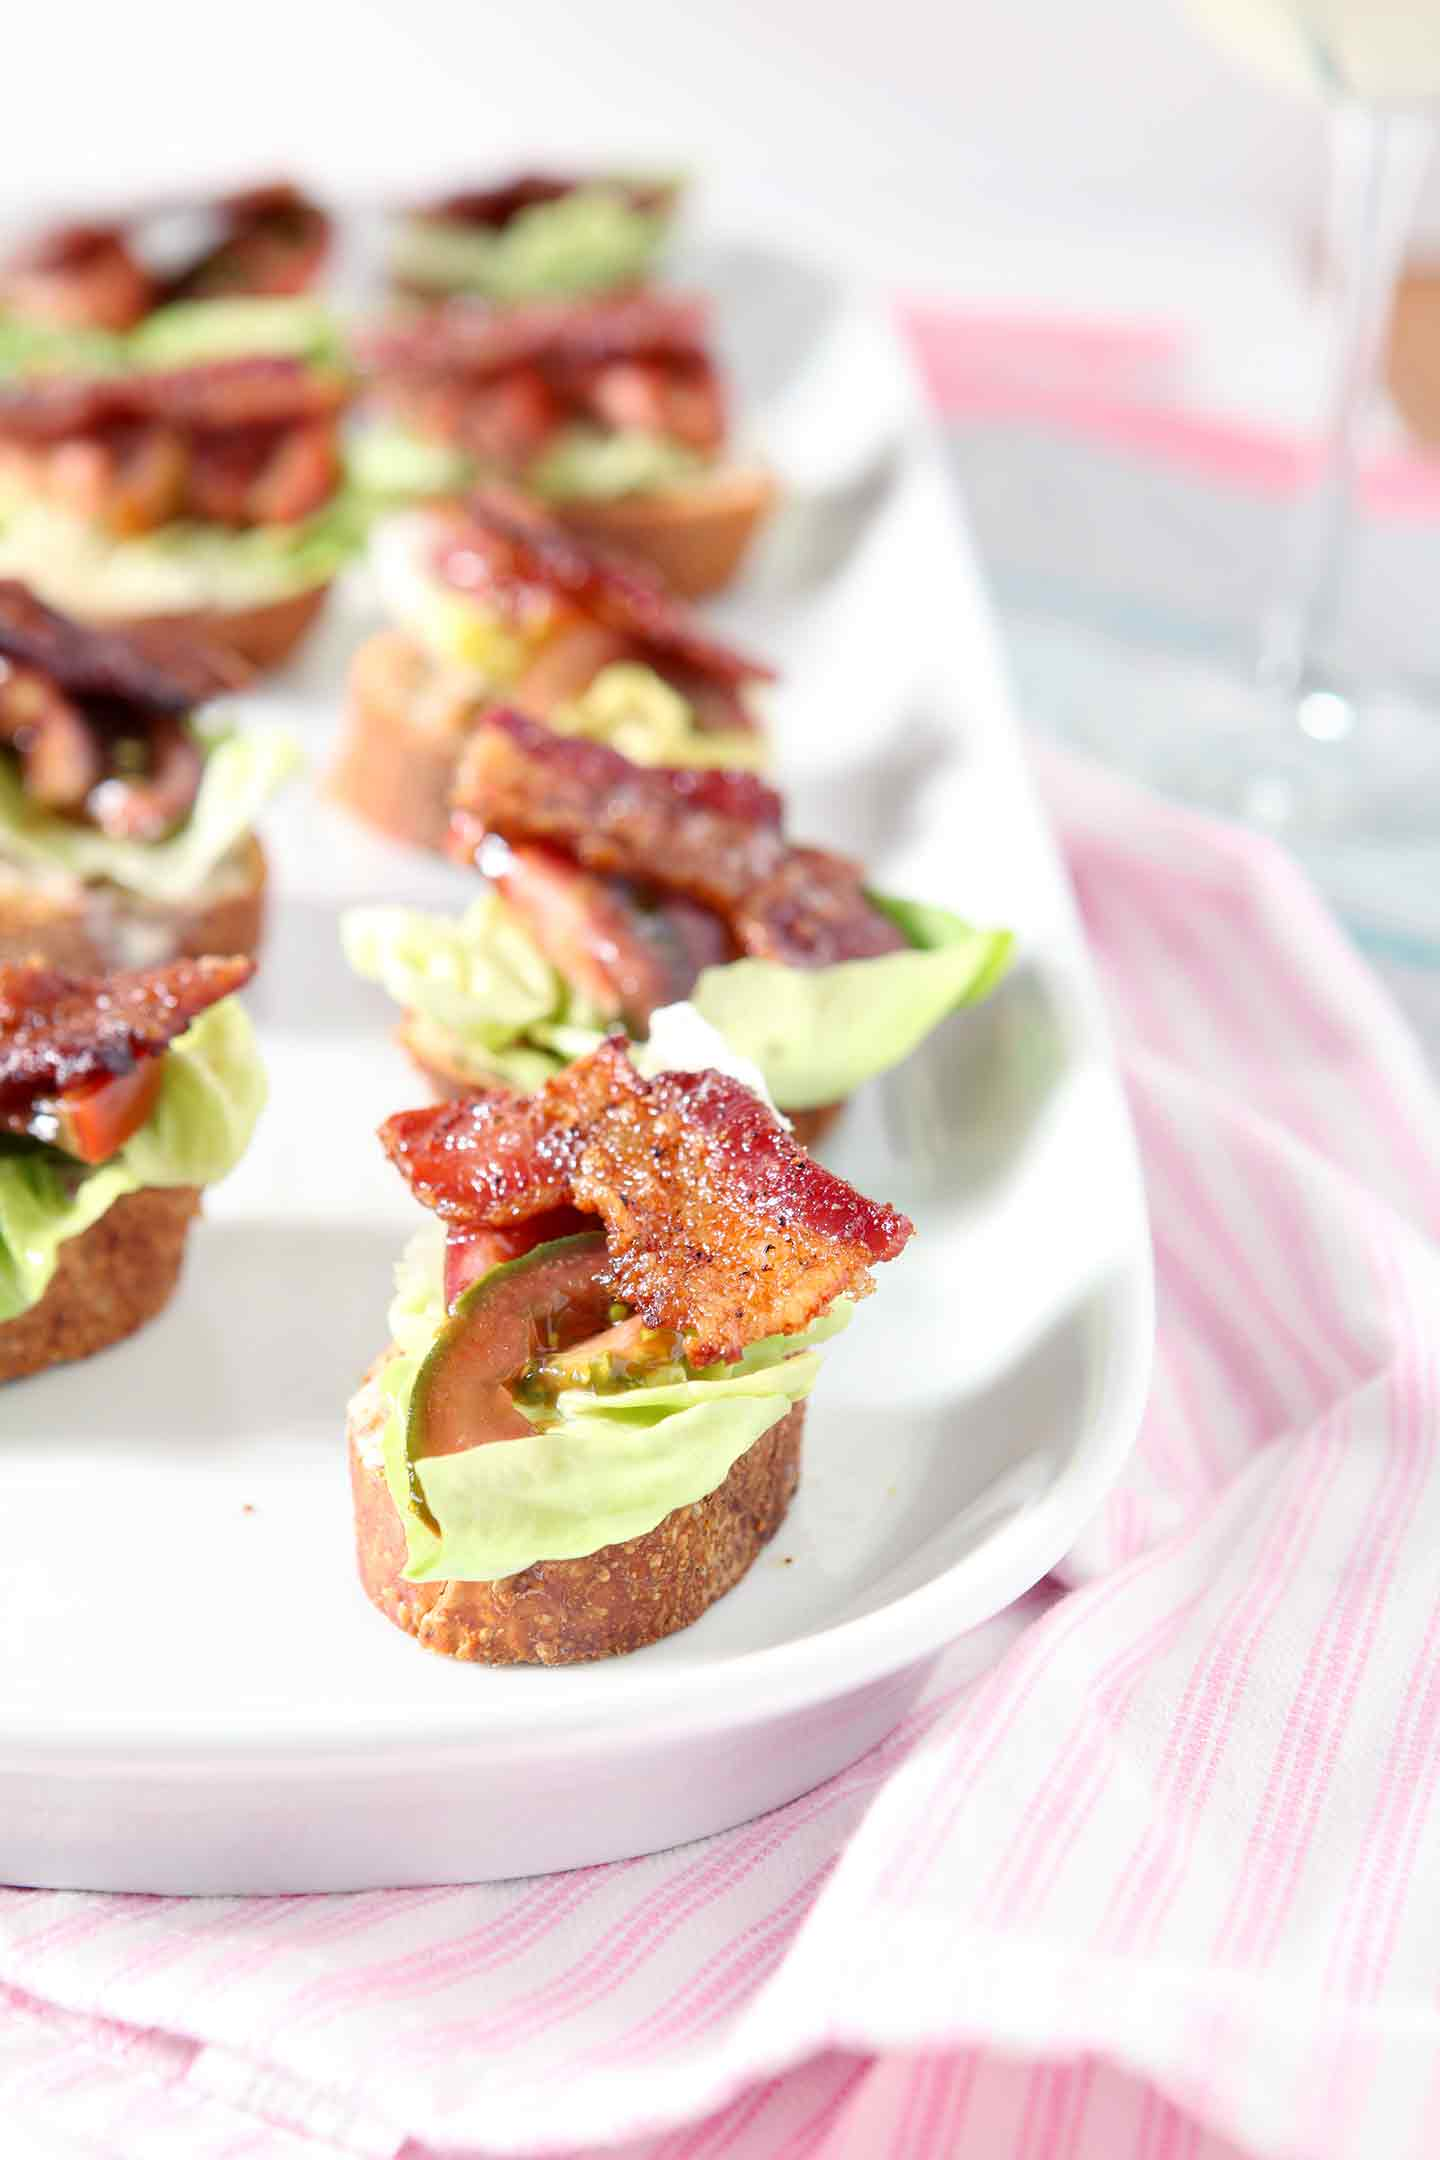 Stumped over what to make for the party? This BLT Bruschetta is a crowd favorite! | Easy Appetizer | Tailgate Food | Baby Shower Recipe | Bridal Shower Food | Handheld Food | Bruschetta Recipe